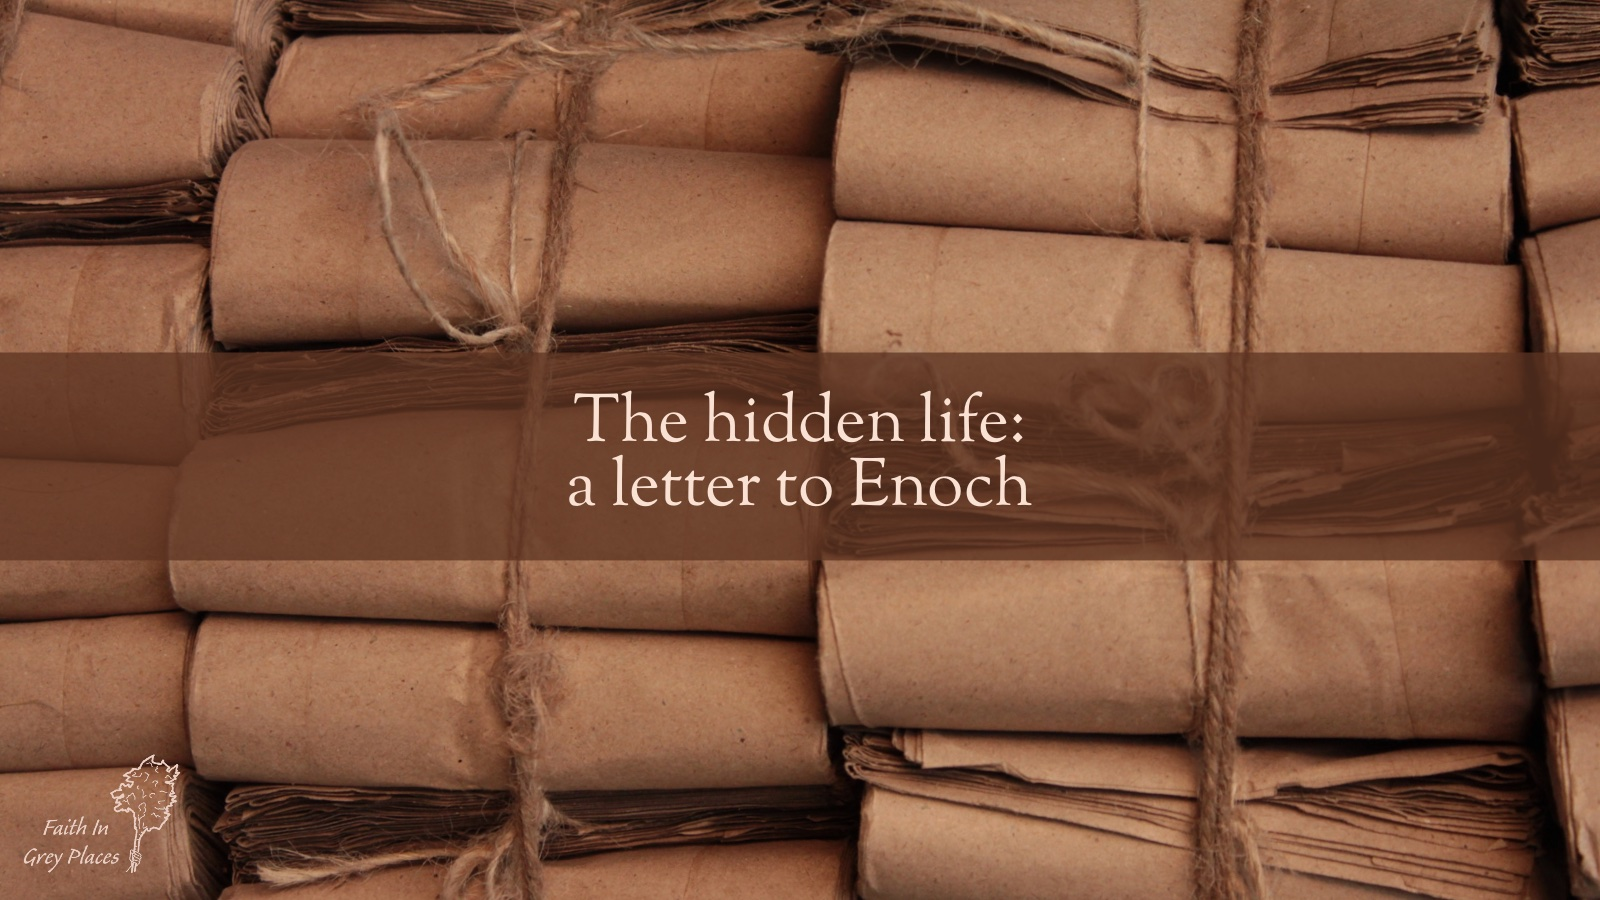 """Rows of brown rolled up paper, tied up with string with words over the top """"The hidden life: a letter to Enoch"""""""